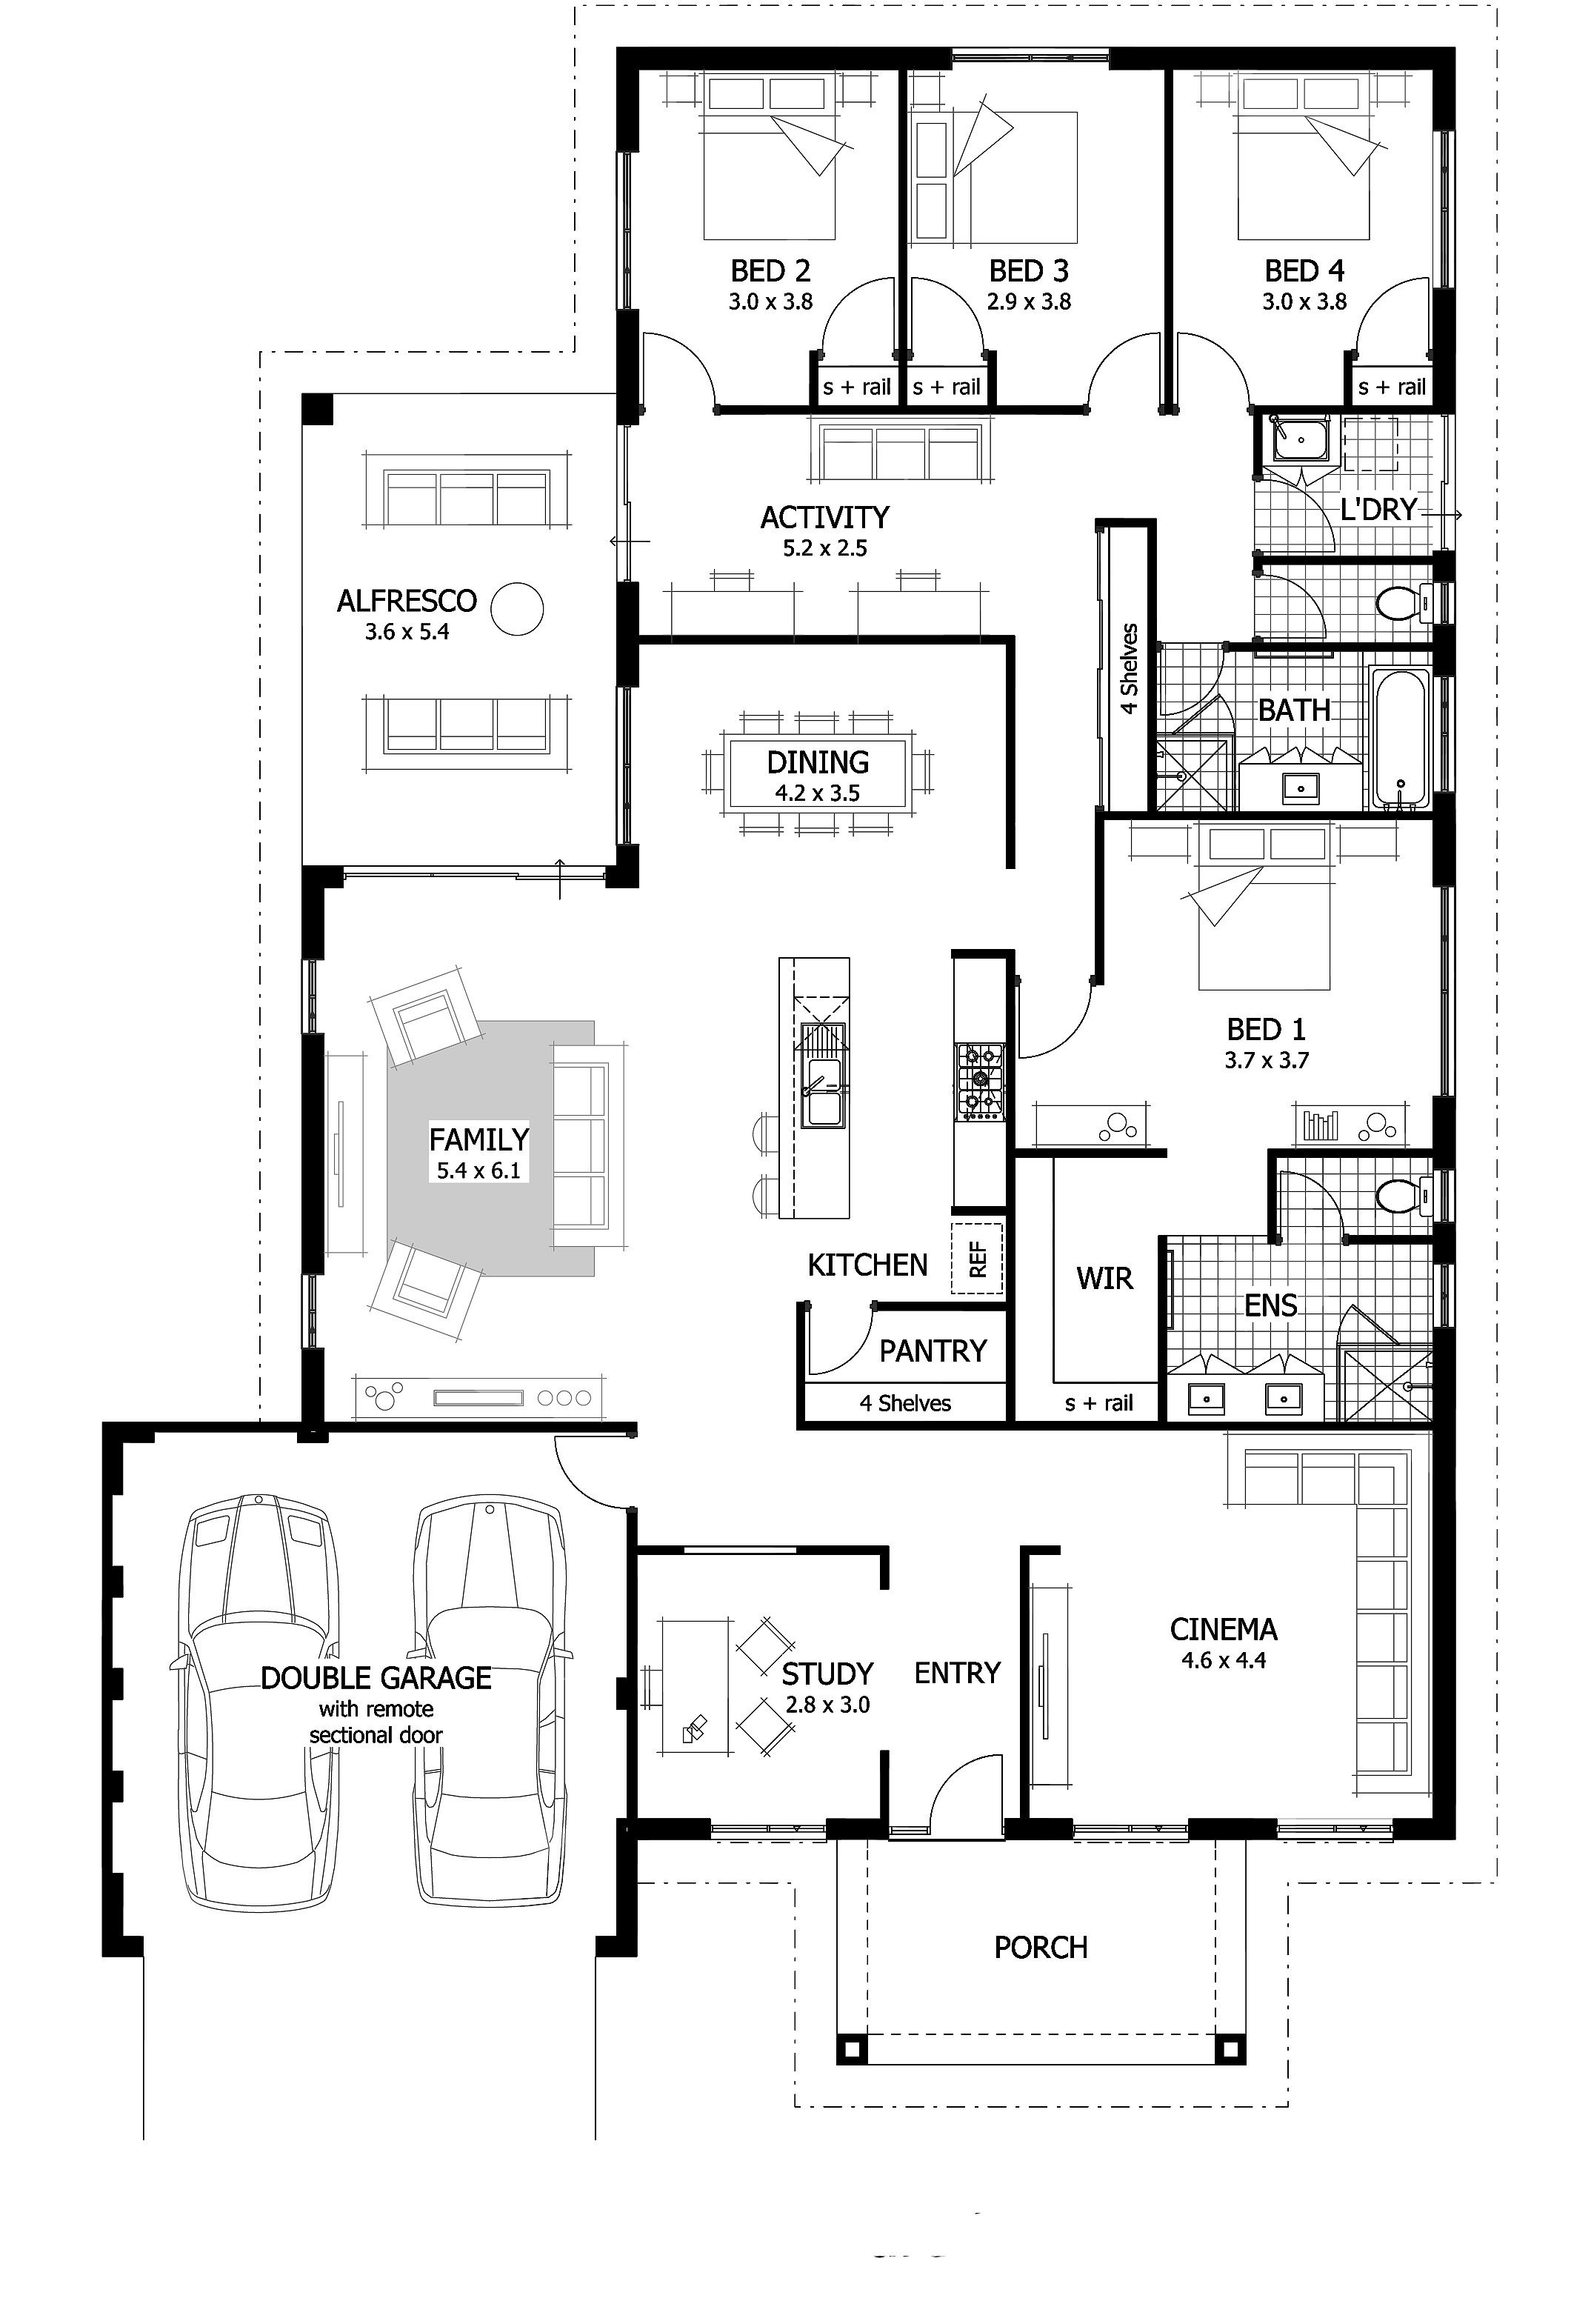 2 Bedroom House Plans With Open Floor Plan Australia